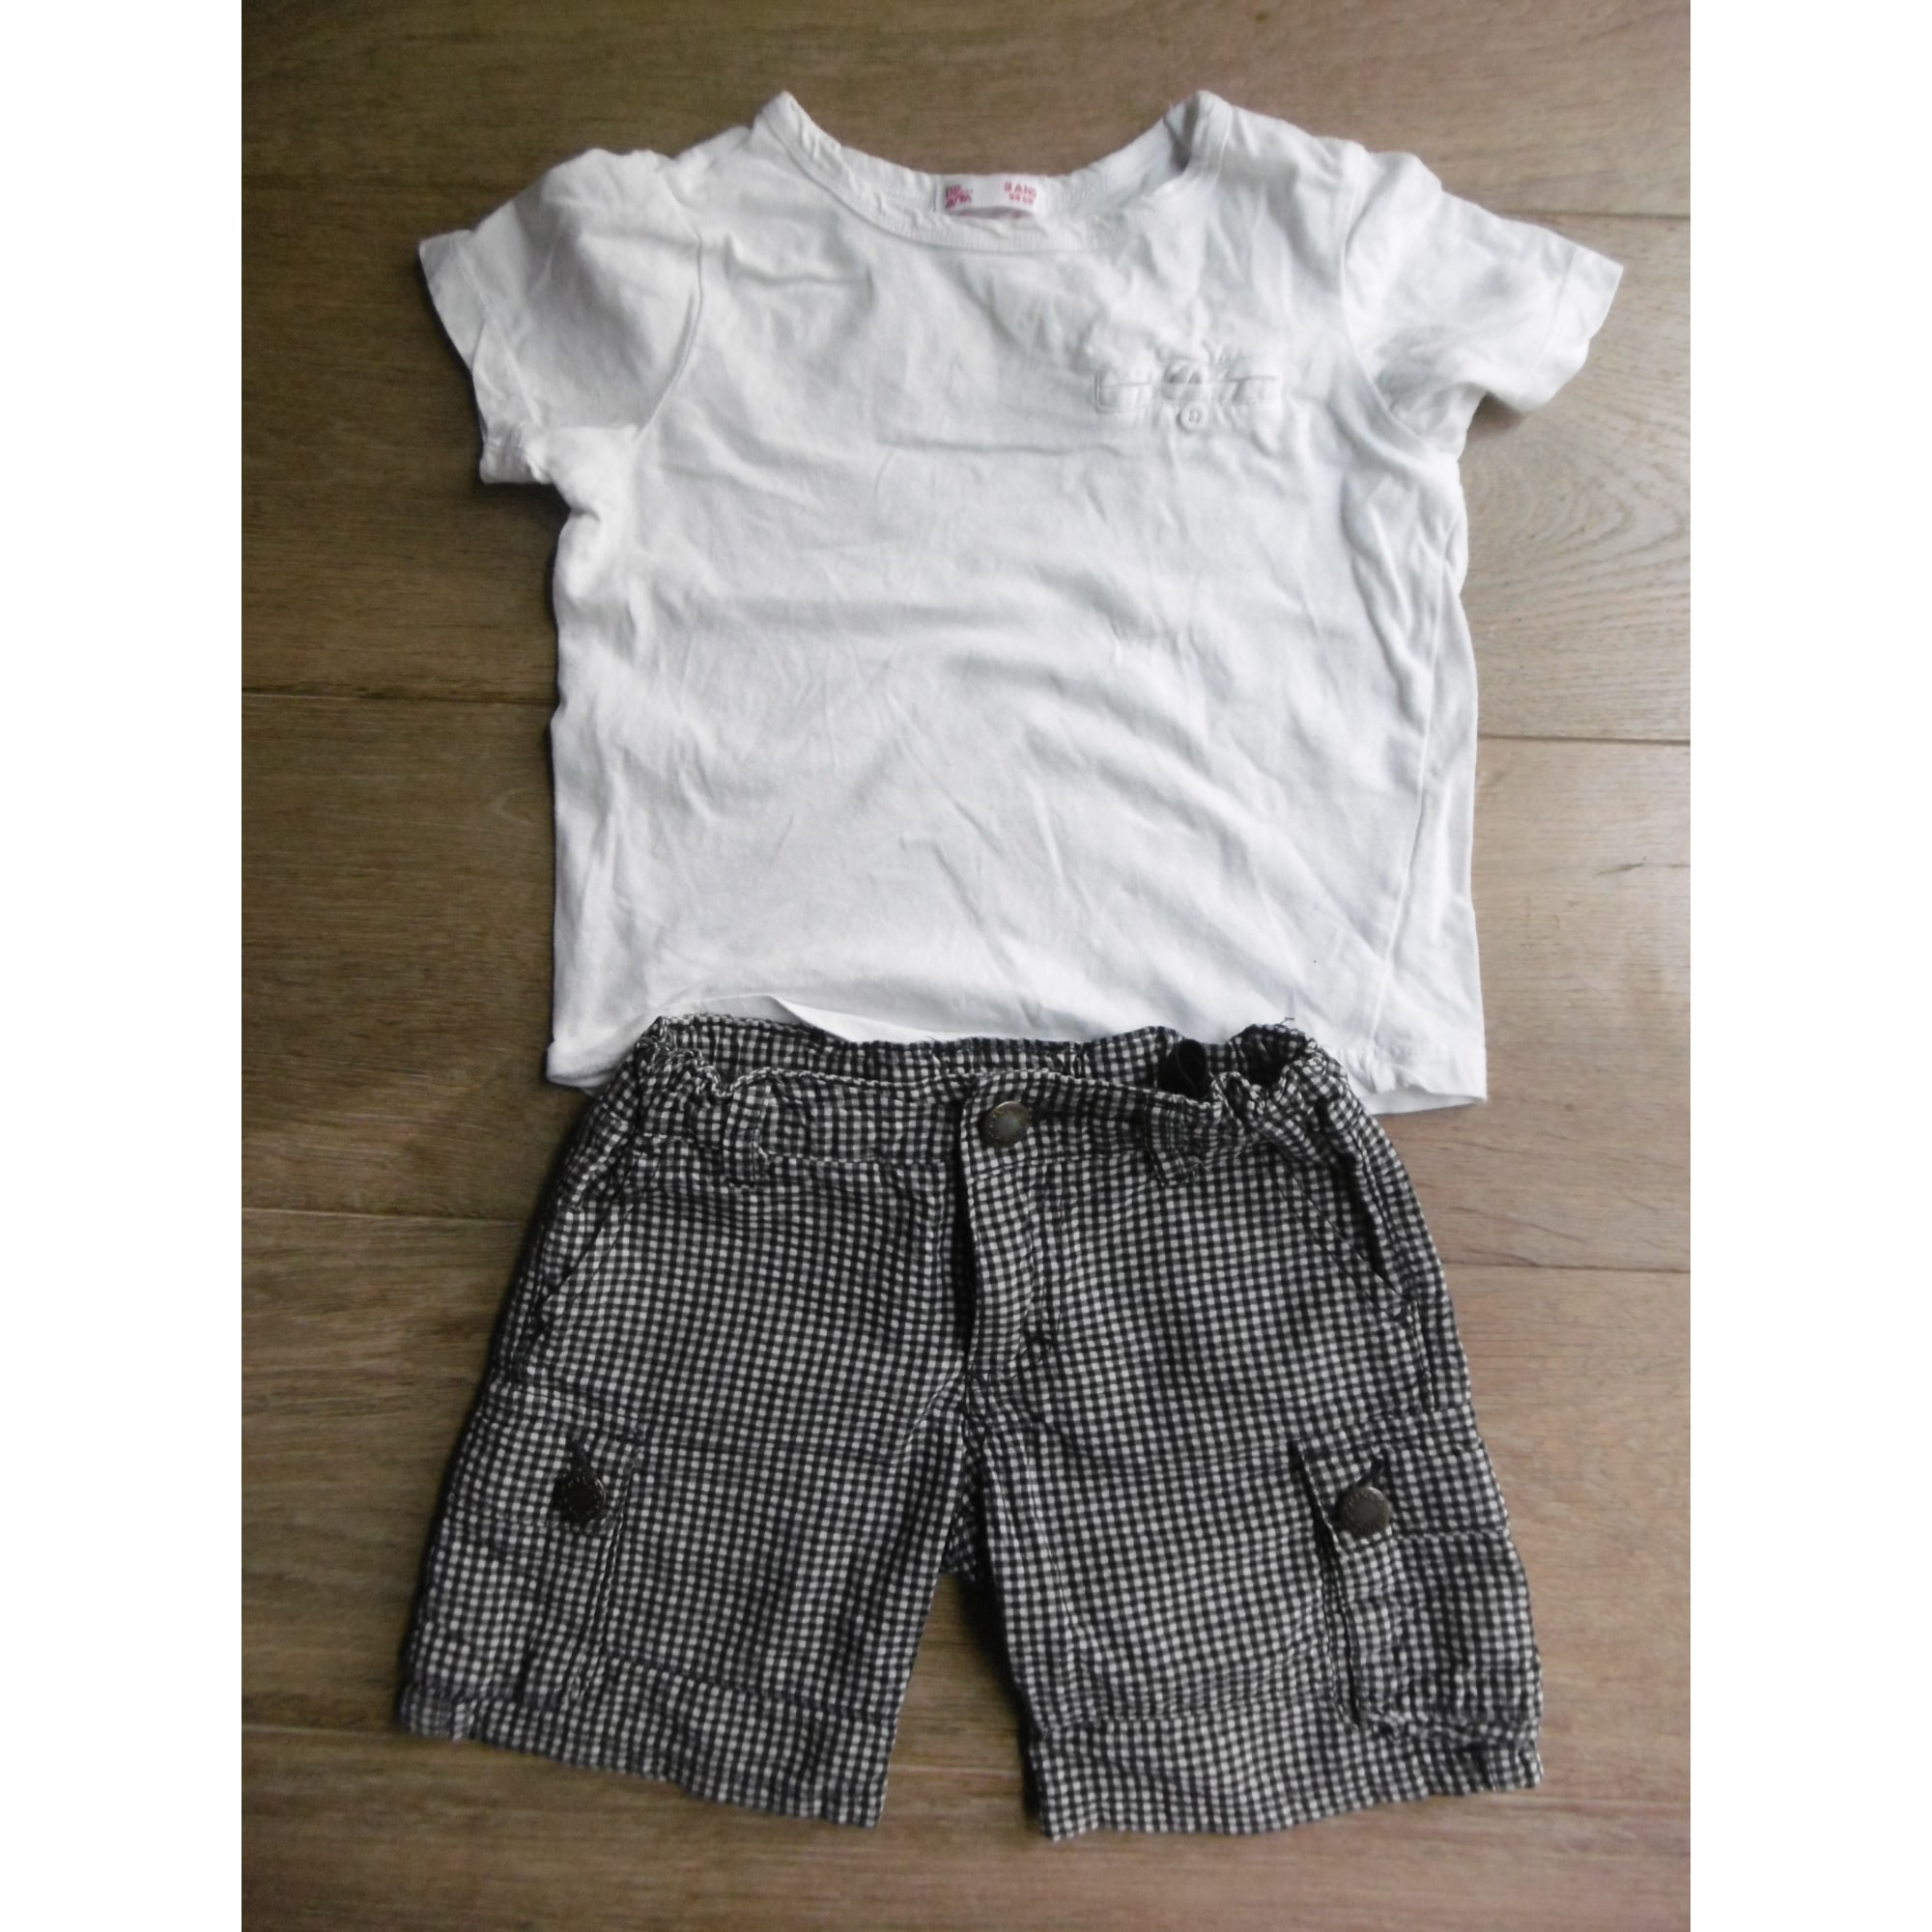 Shorts Set, Outfit OOXOO Multicolor